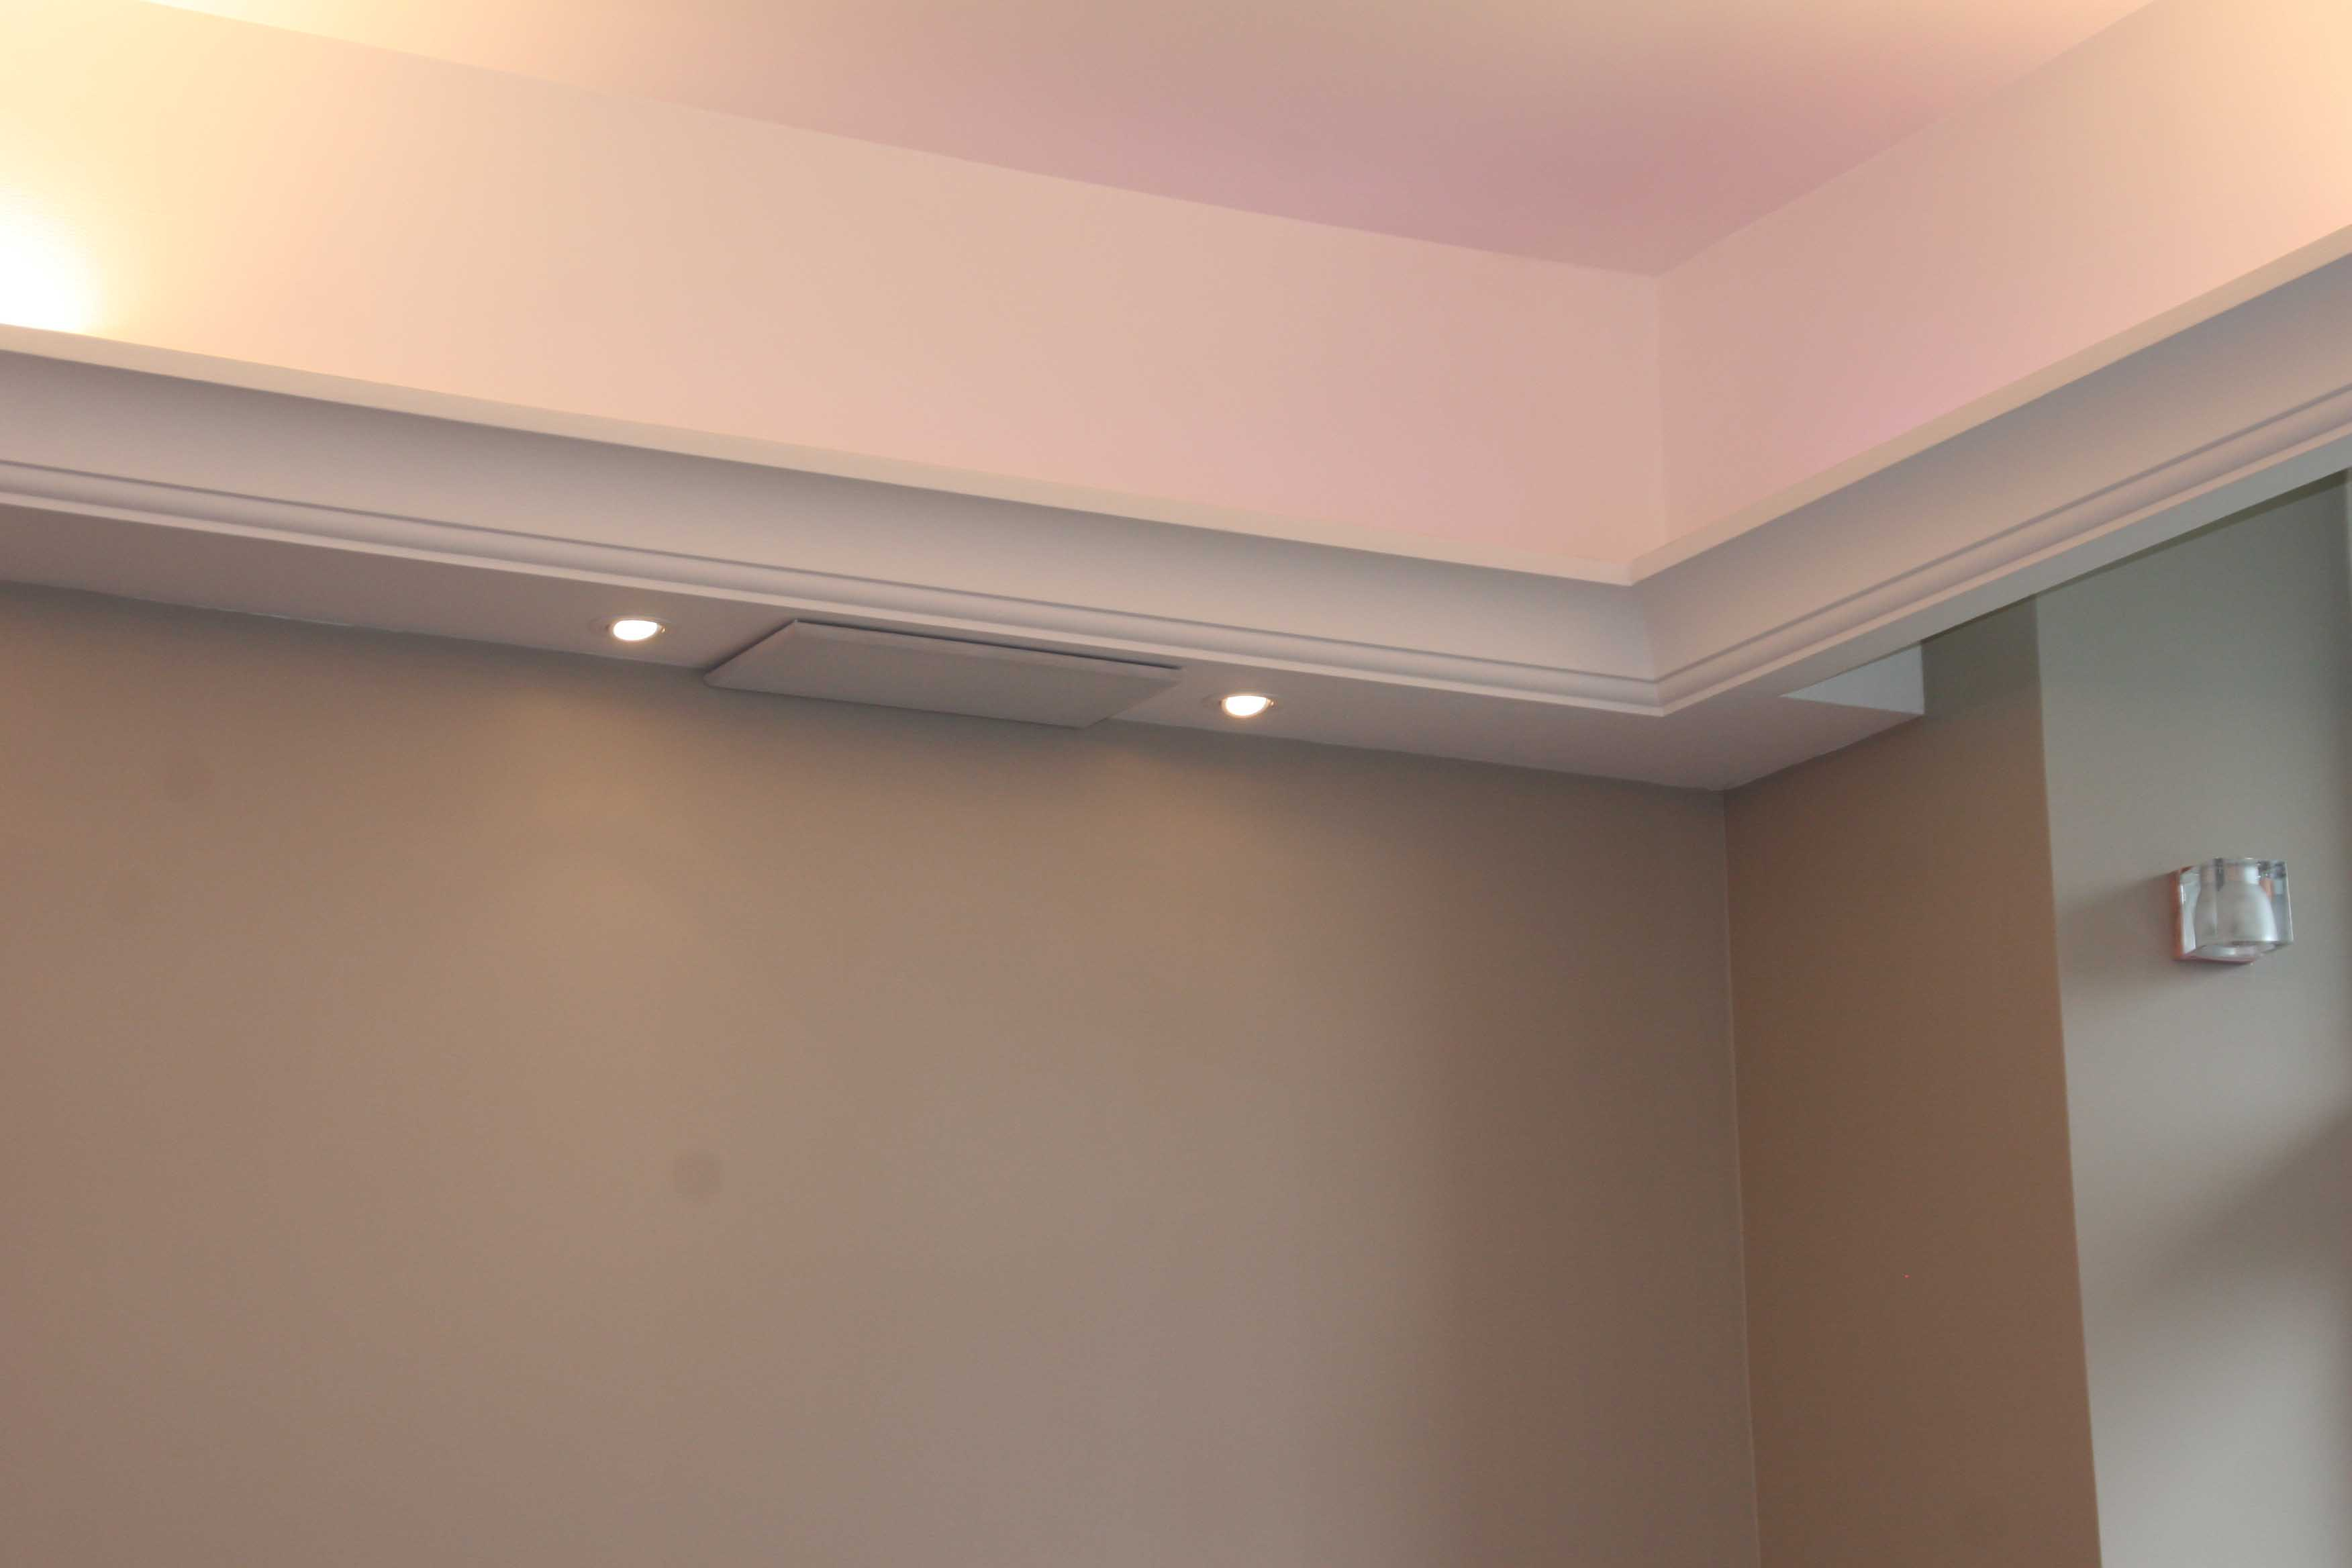 D coration plafond l art de mettre en valeur son for Modele de plafond decoratif